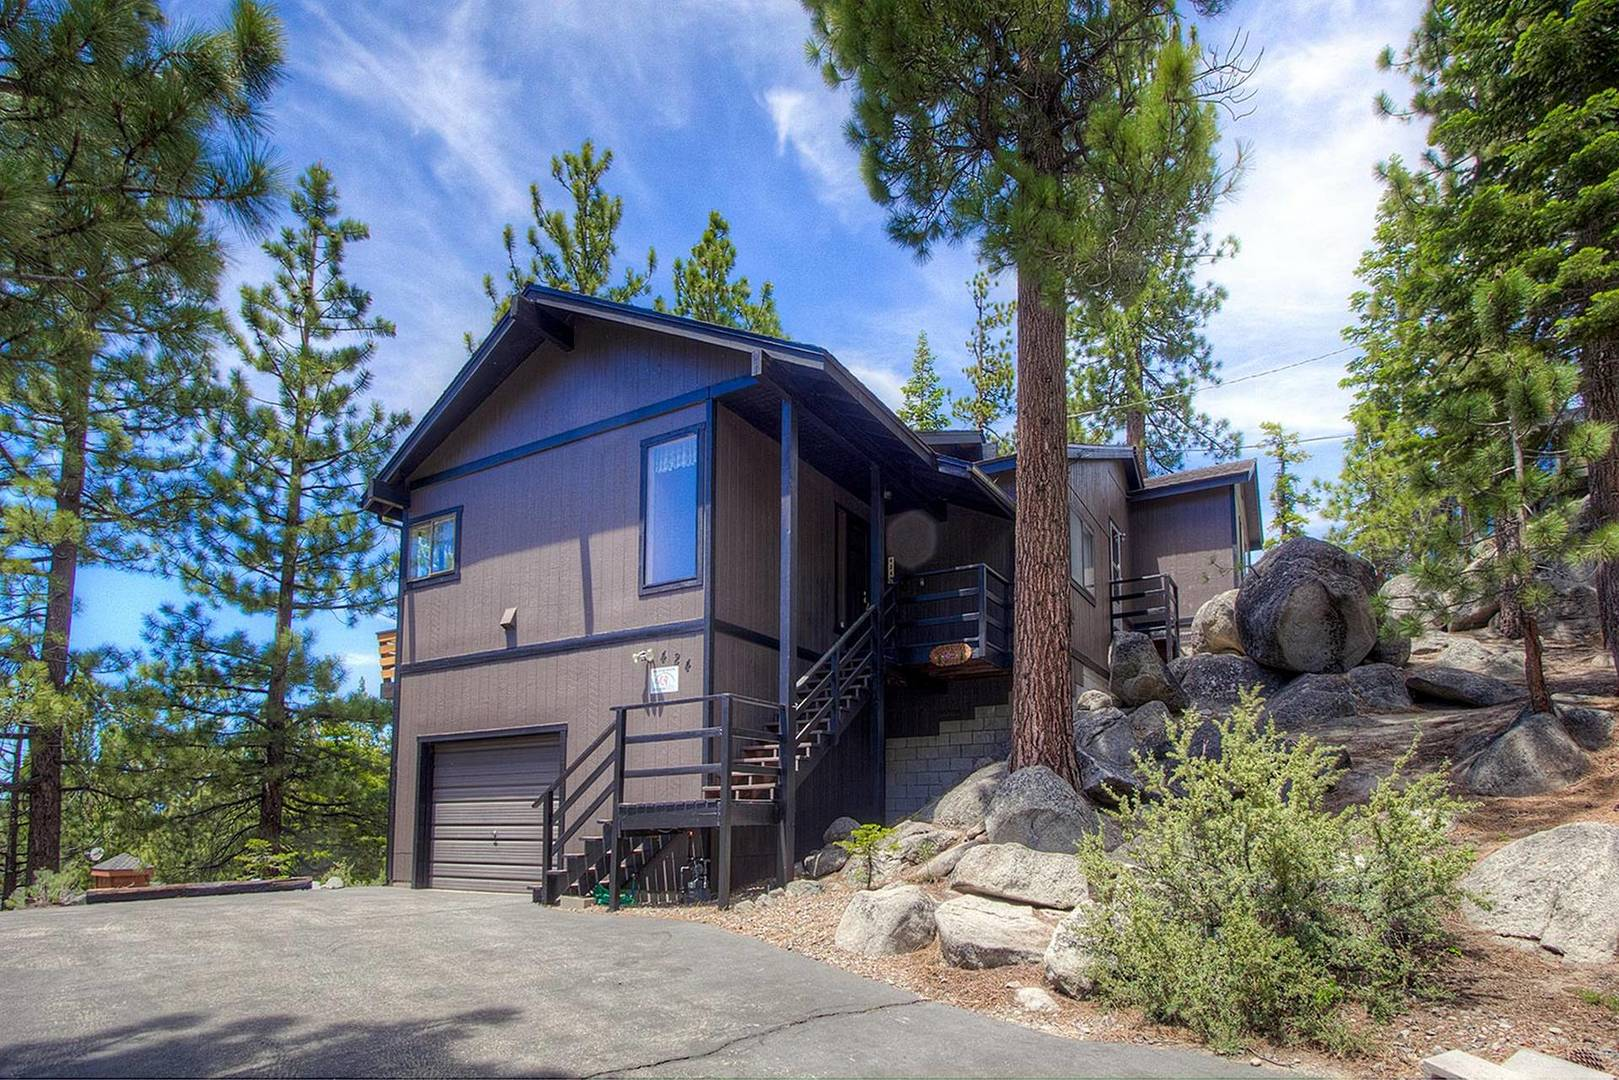 nvh0824 Lake Tahoe Vacation Rental